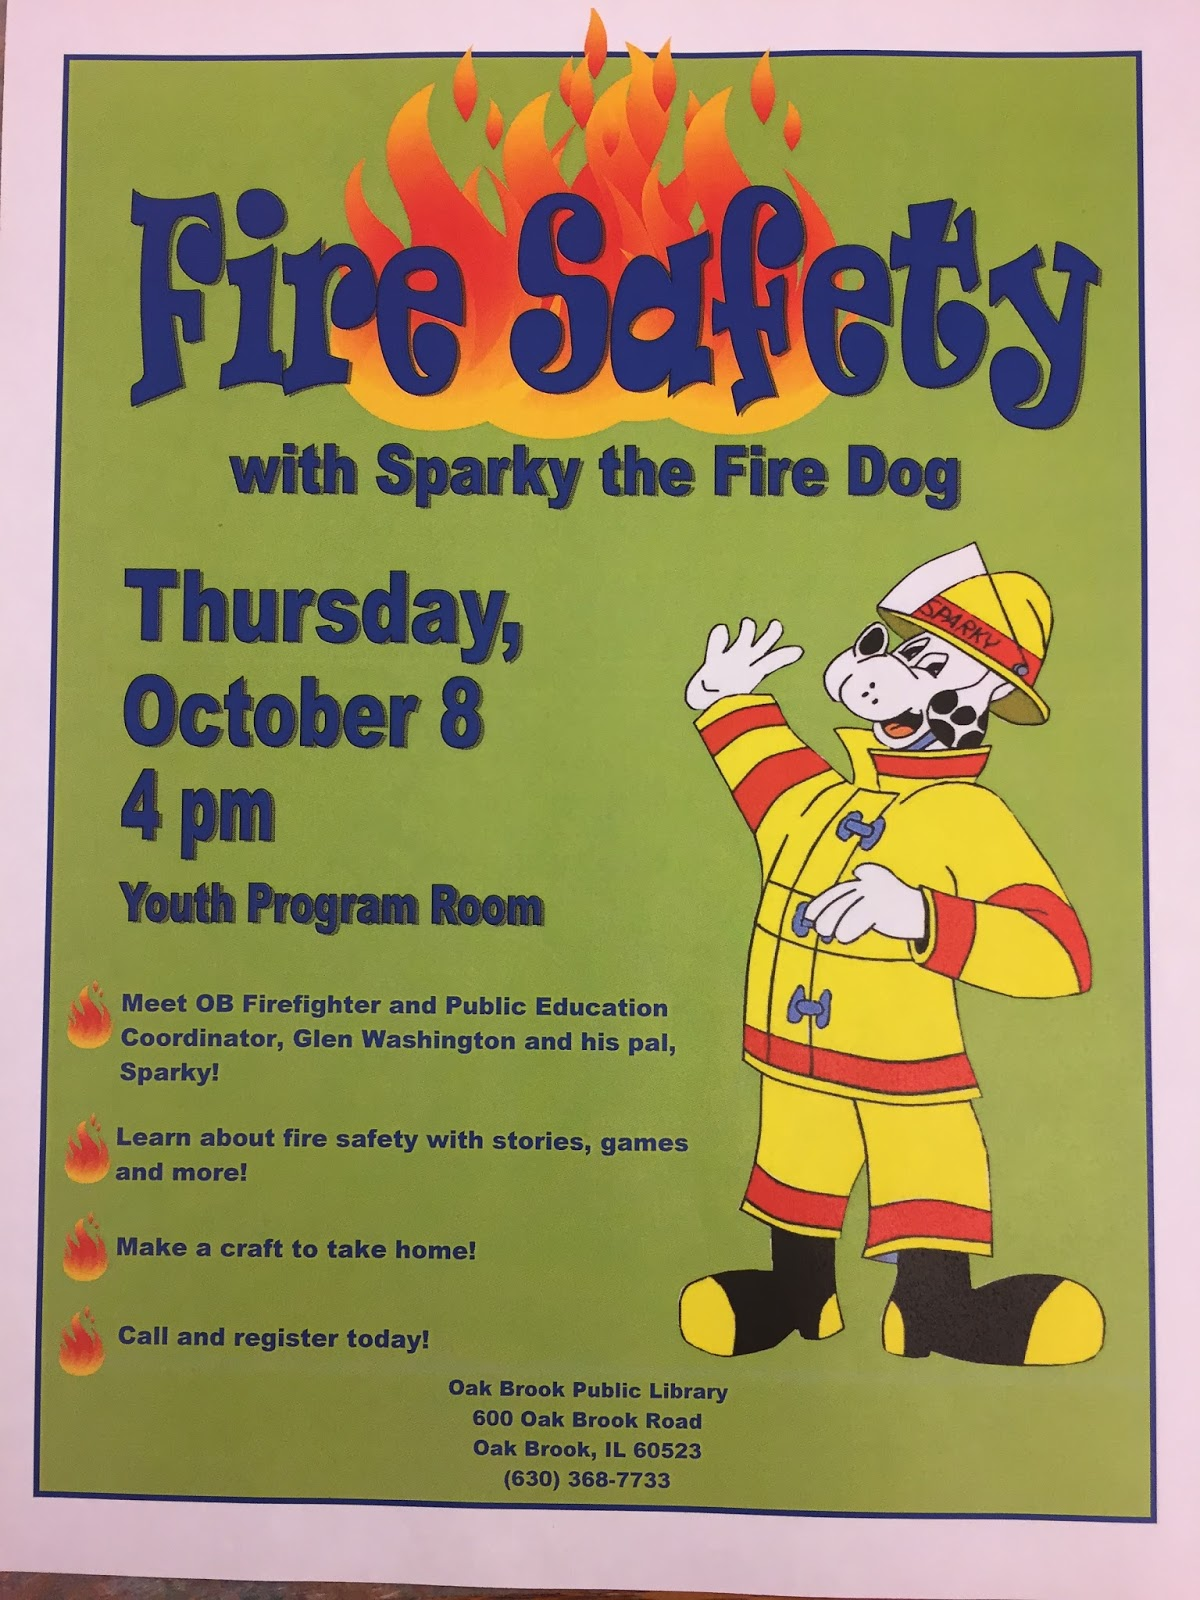 Obpl Youth Services Blog Fire Safety With Sparky The Fire Dog